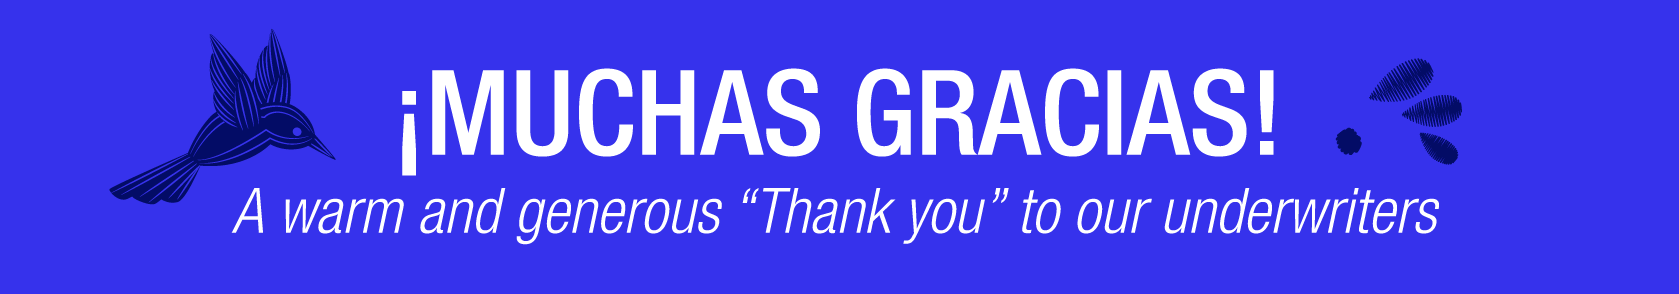 LTS19-thank-you-banner.png